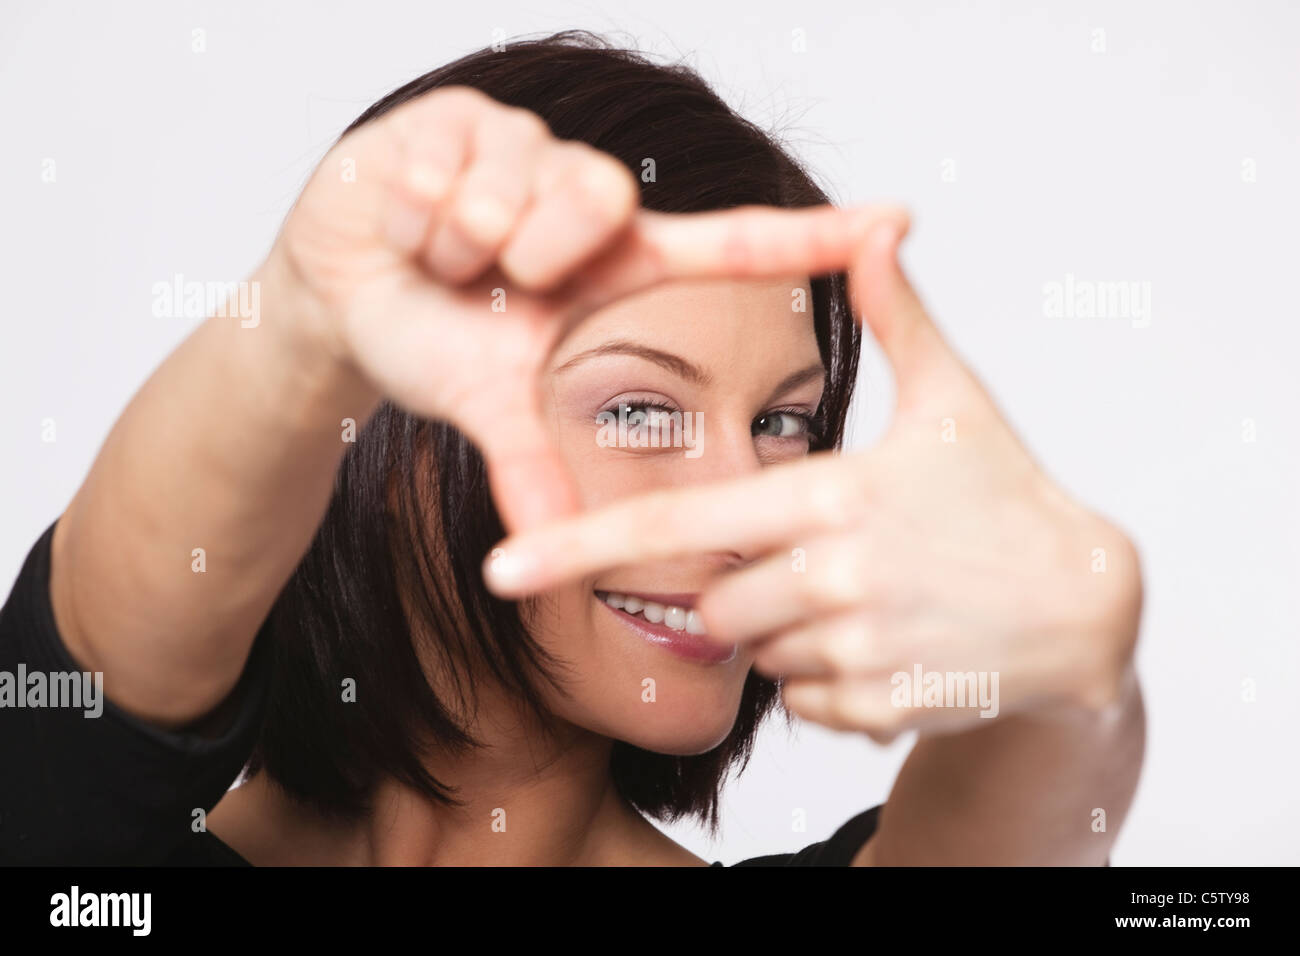 Close up of mid adult woman showing hand sign against white background, smiling, portrait - Stock Image